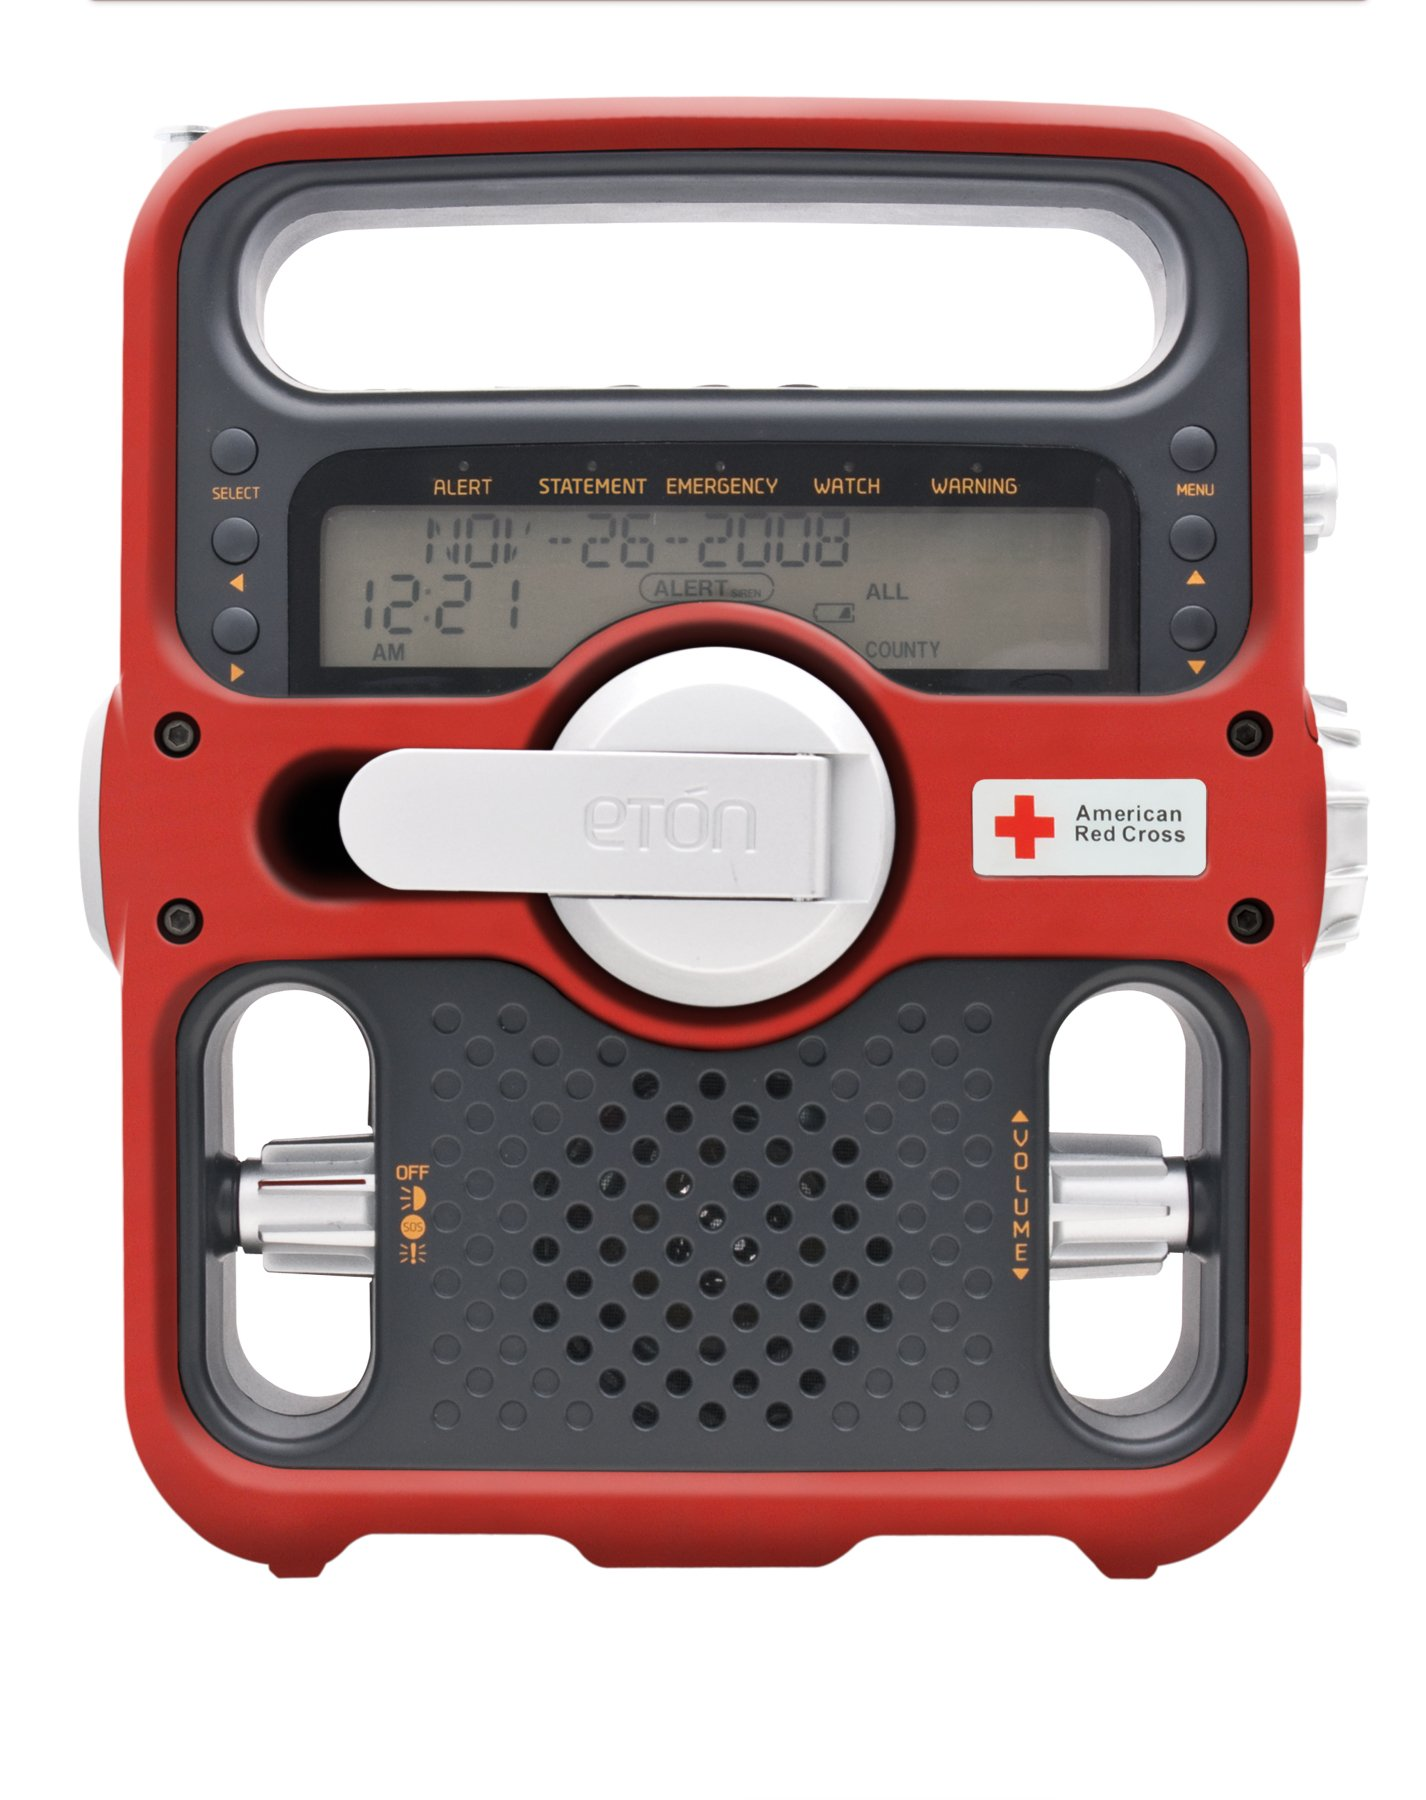 Eton American Red Cross ARCFR600R Solarlink Digital AM/FM/SW/NOAA S.A.M.E. Weather Radio with Flashlight, Siren, Solar and CellPhone Charger (Red) (Discontinued by Manufacturer)